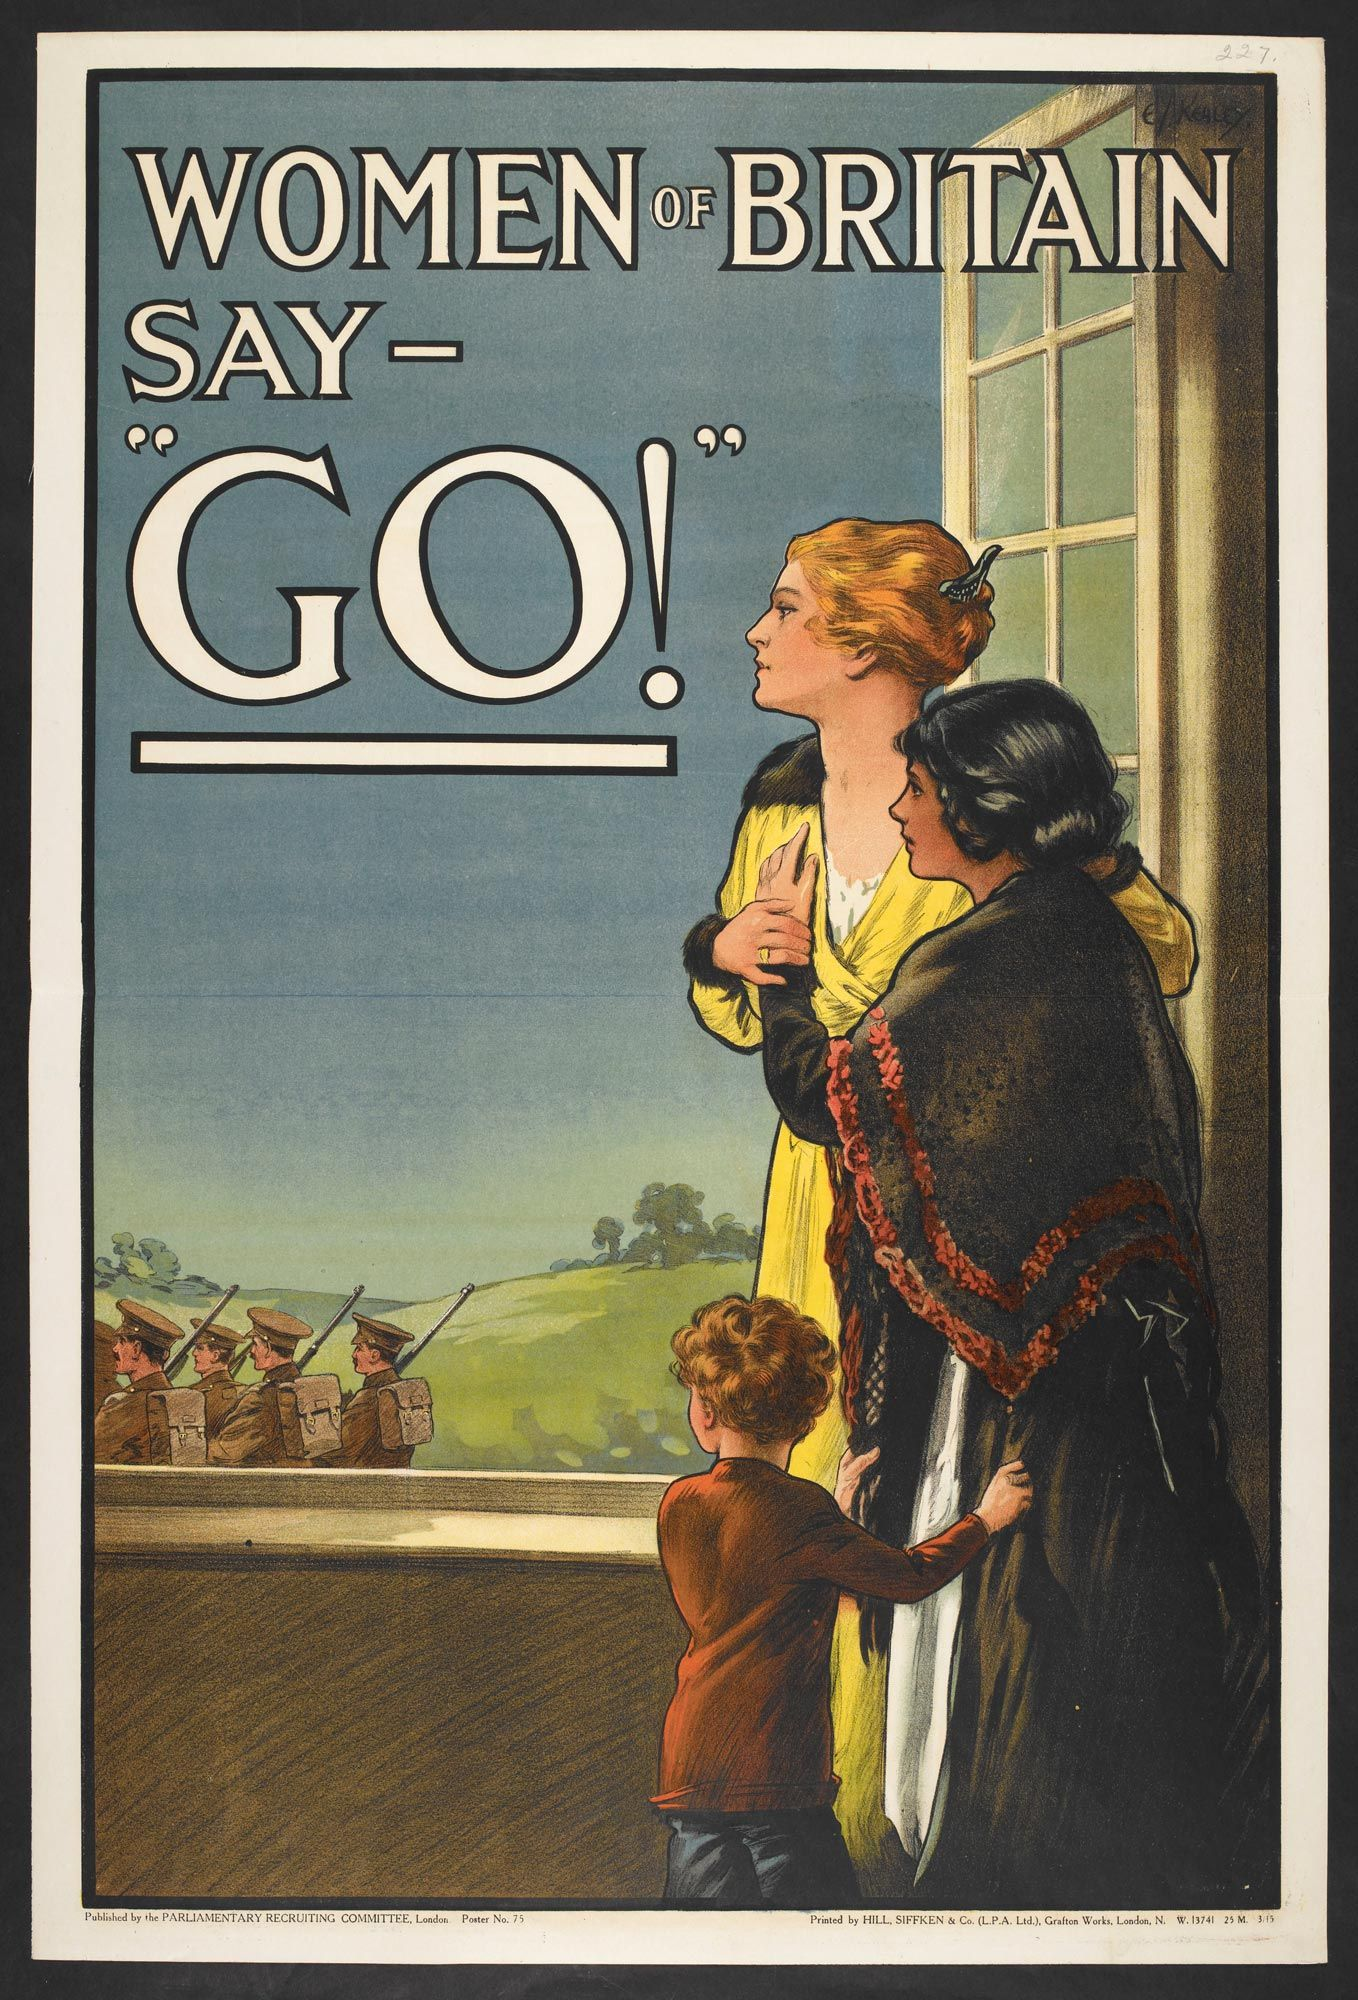 British WW1 Propaganda - There is side story on Downton Abbey ...